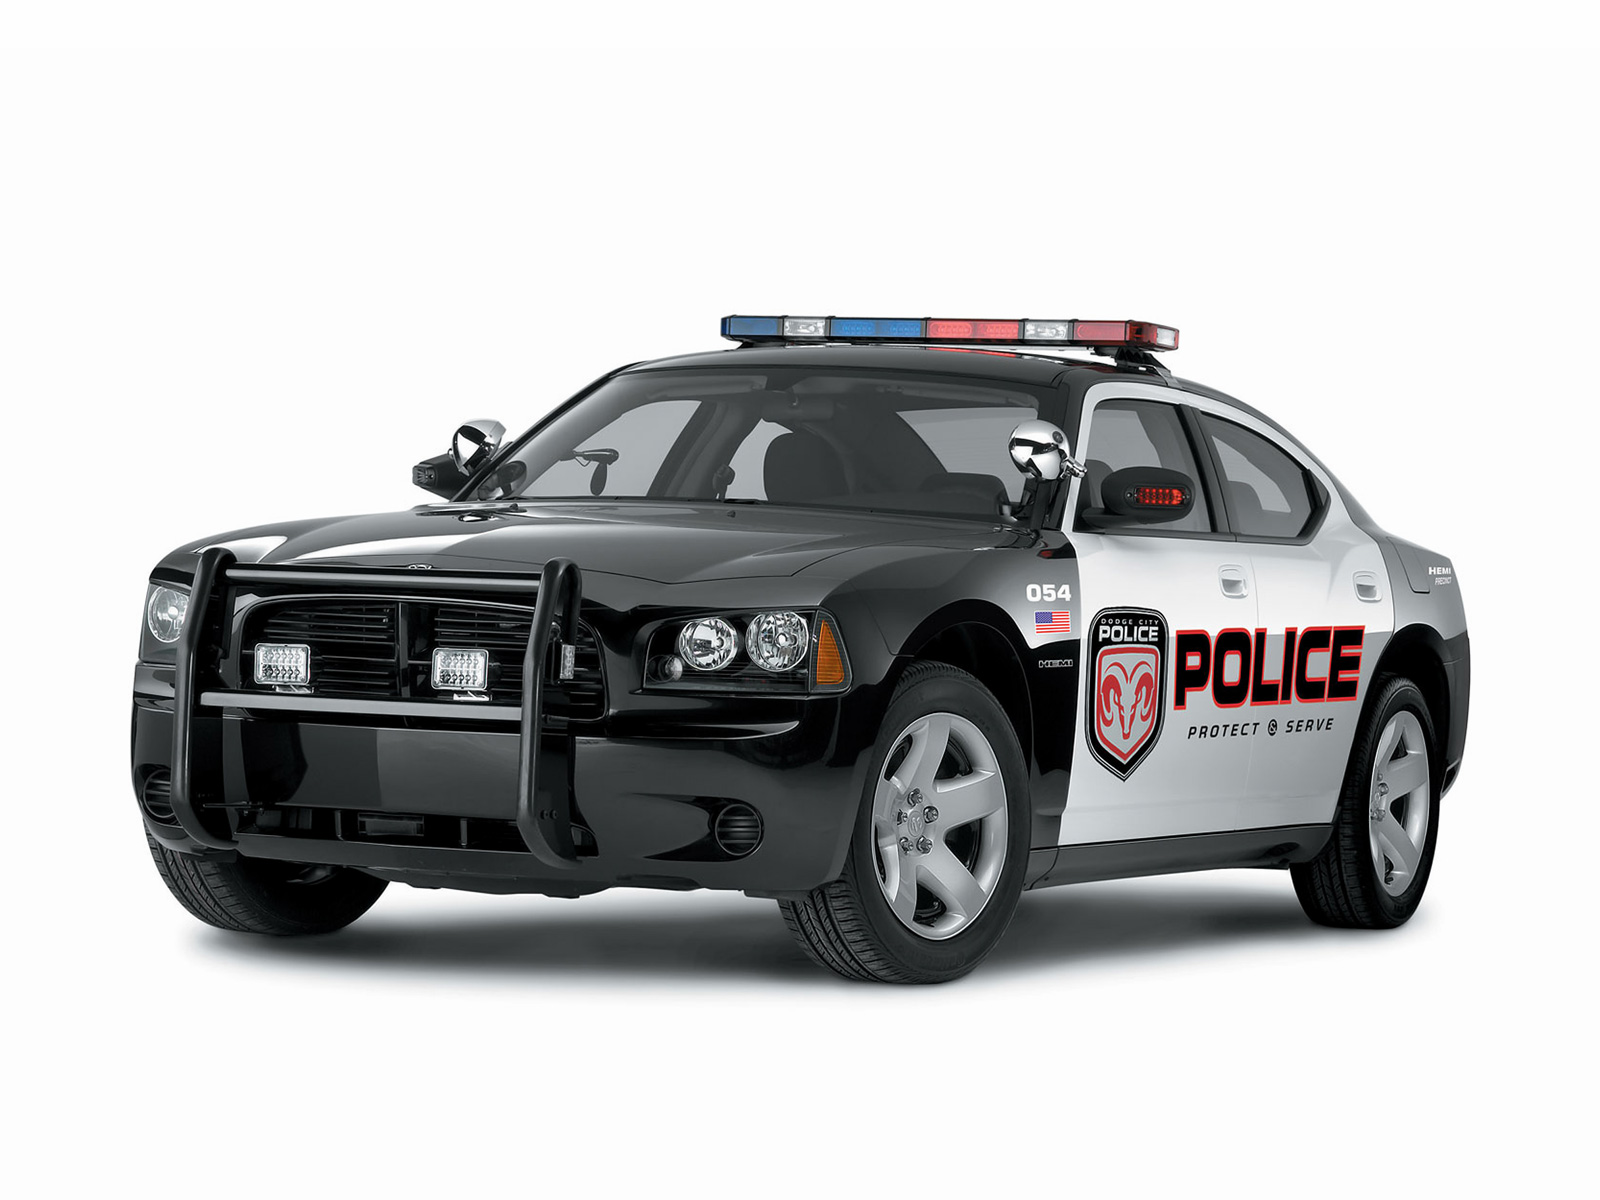 Dodge police car wallpapers and images - wallpapers, pictures, photos